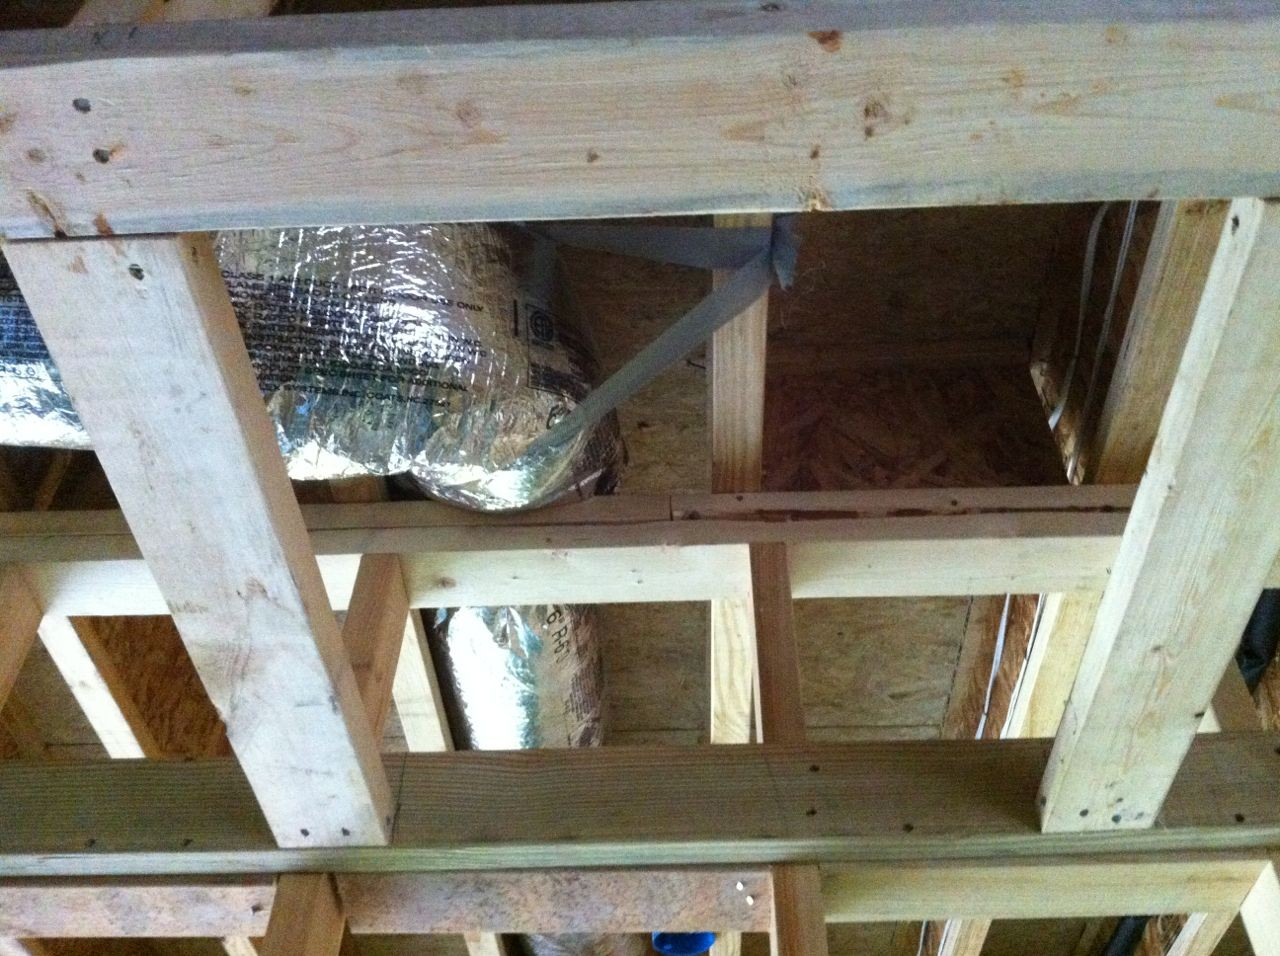 Garage ceiling joists with no blocking and with ducts running through